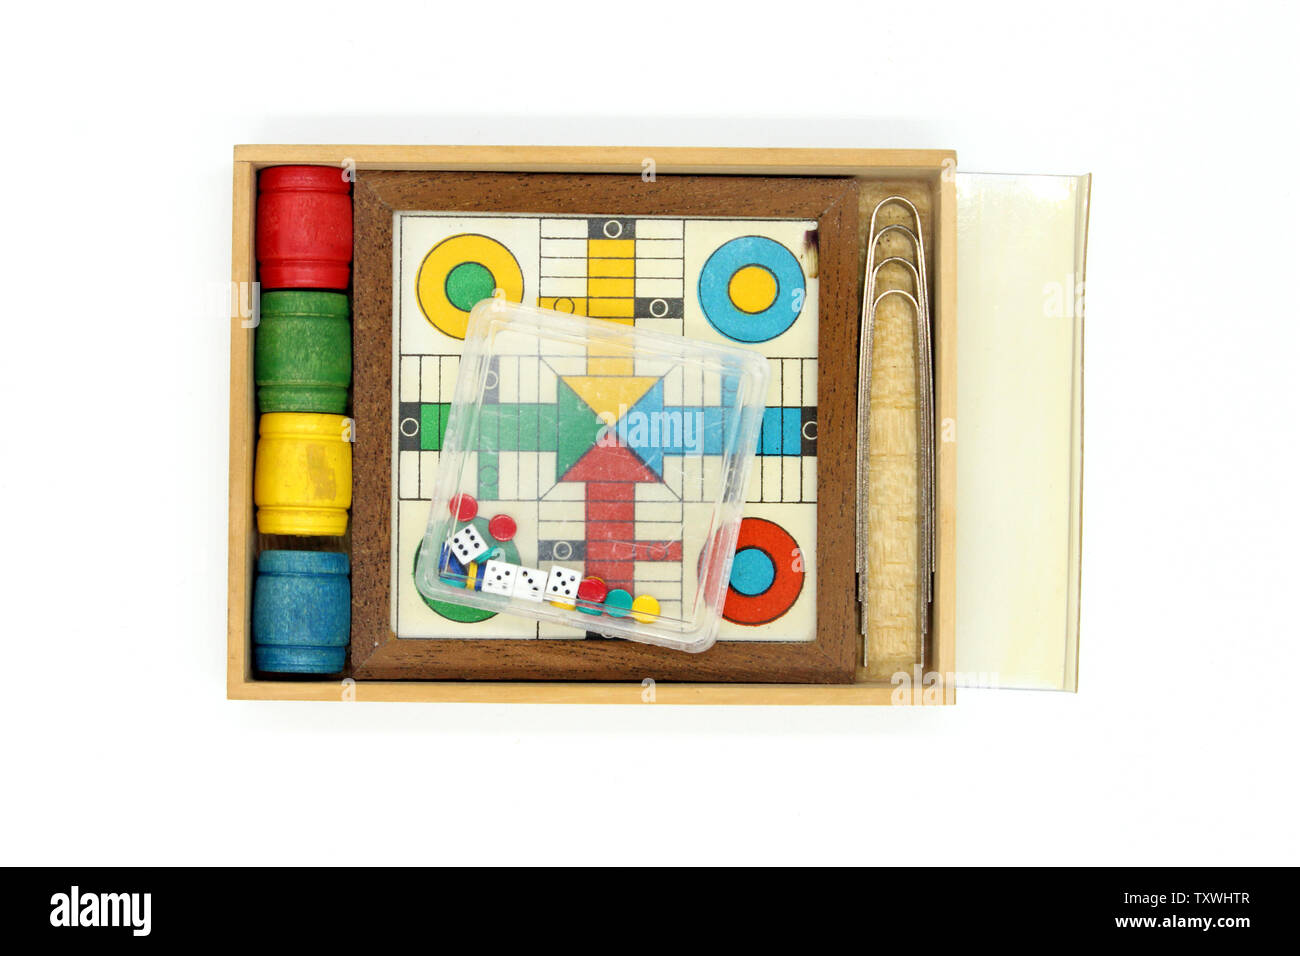 Ludo (board game) miniature,  isolated on white background, close-up Stock Photo